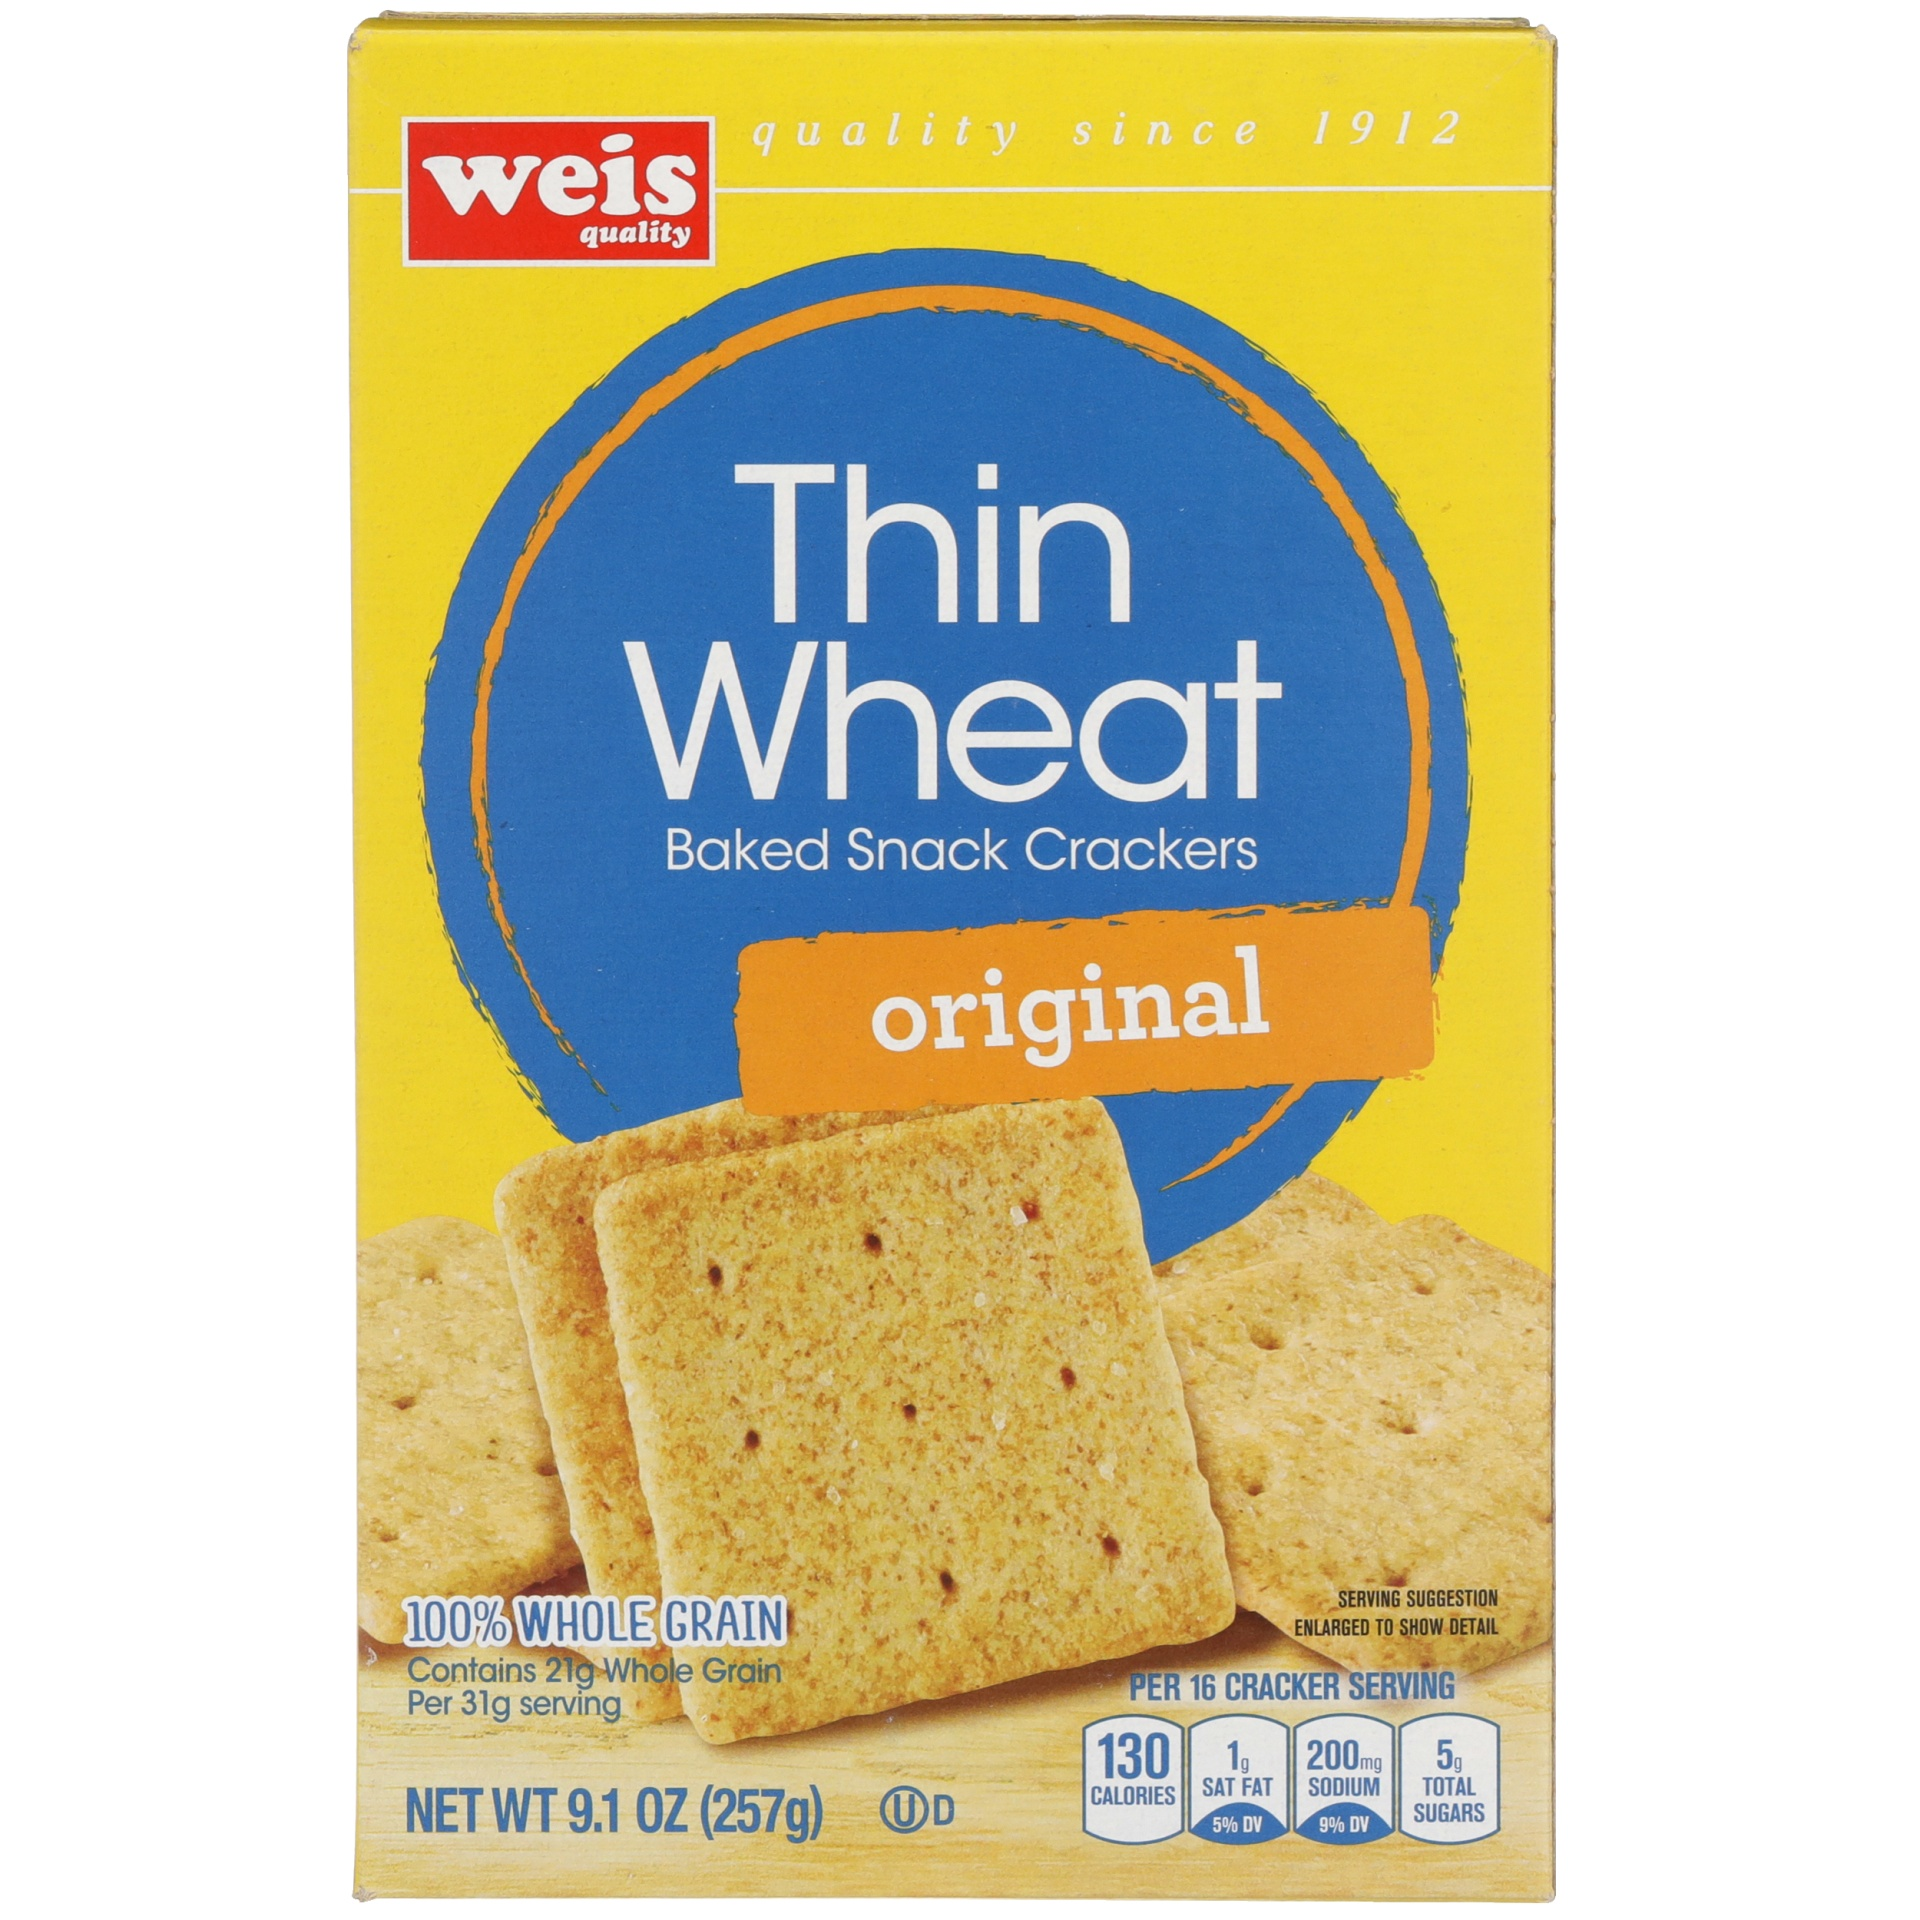 slide 3 of 6, Weis Quality Wheat Thin Cracker,